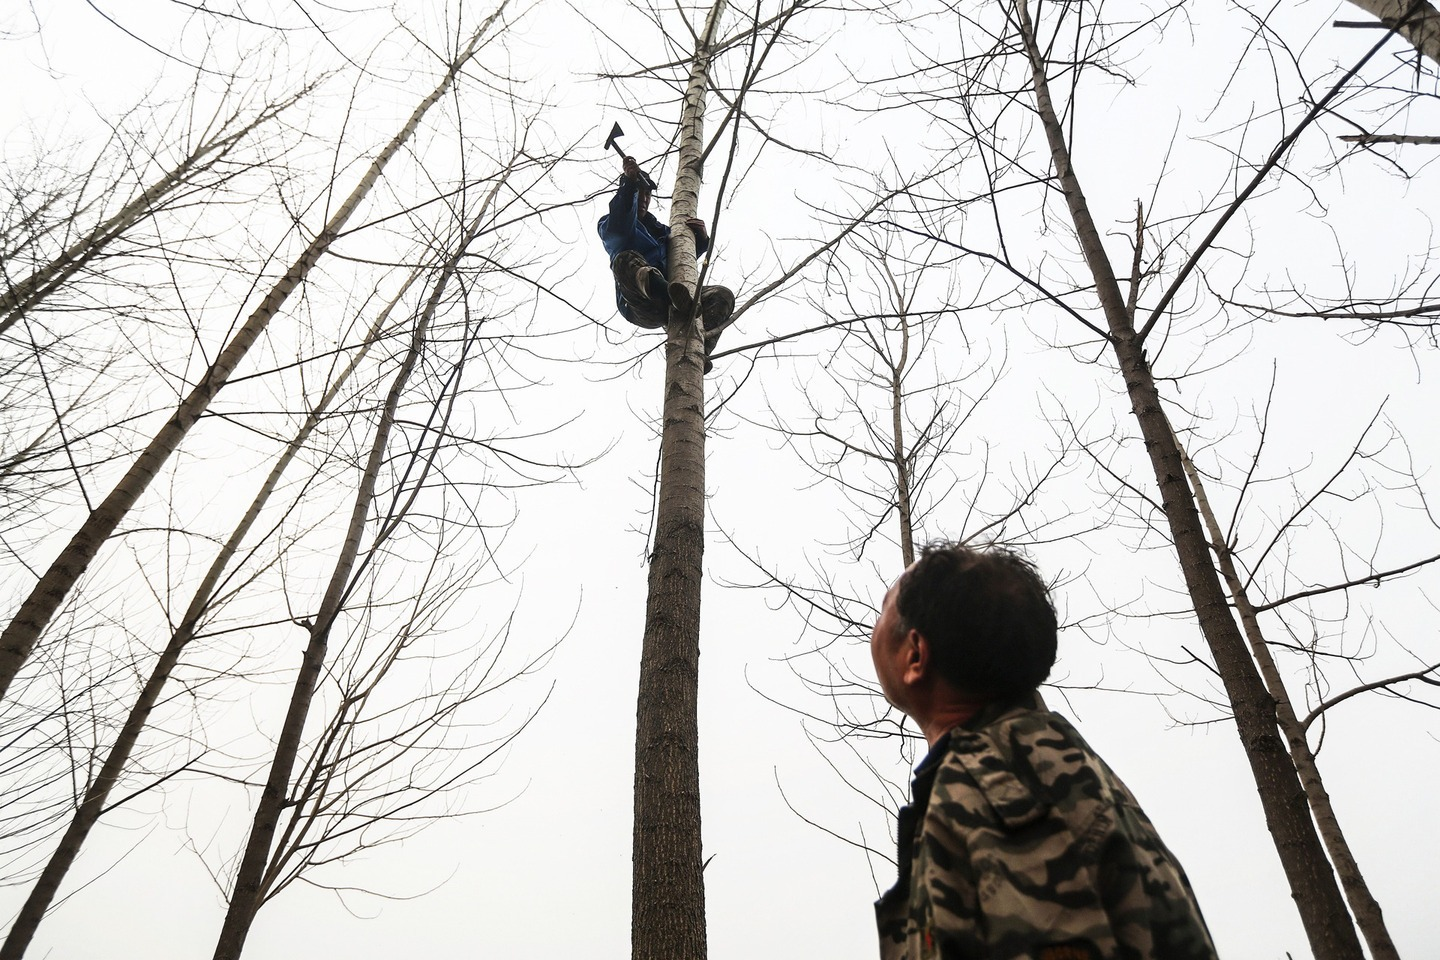 Jia Wenqi watches as Jia Haixia chops branches from a tree.